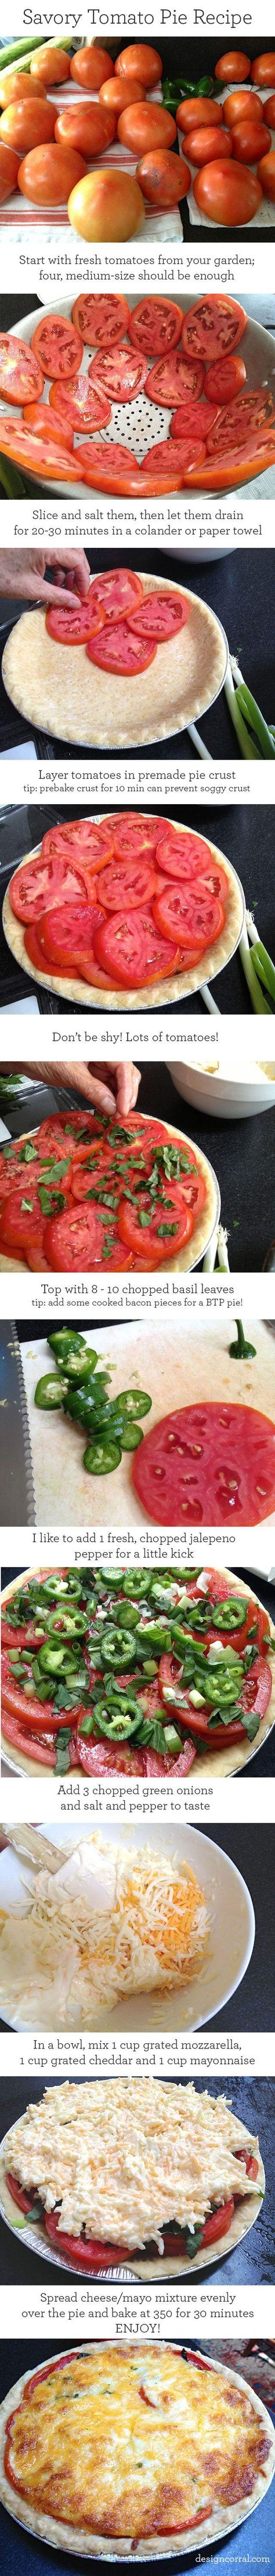 Savory, spicy tomato pie recipe. You could make a kind of paleo crust for it, reducing the amount of refined ingredients.